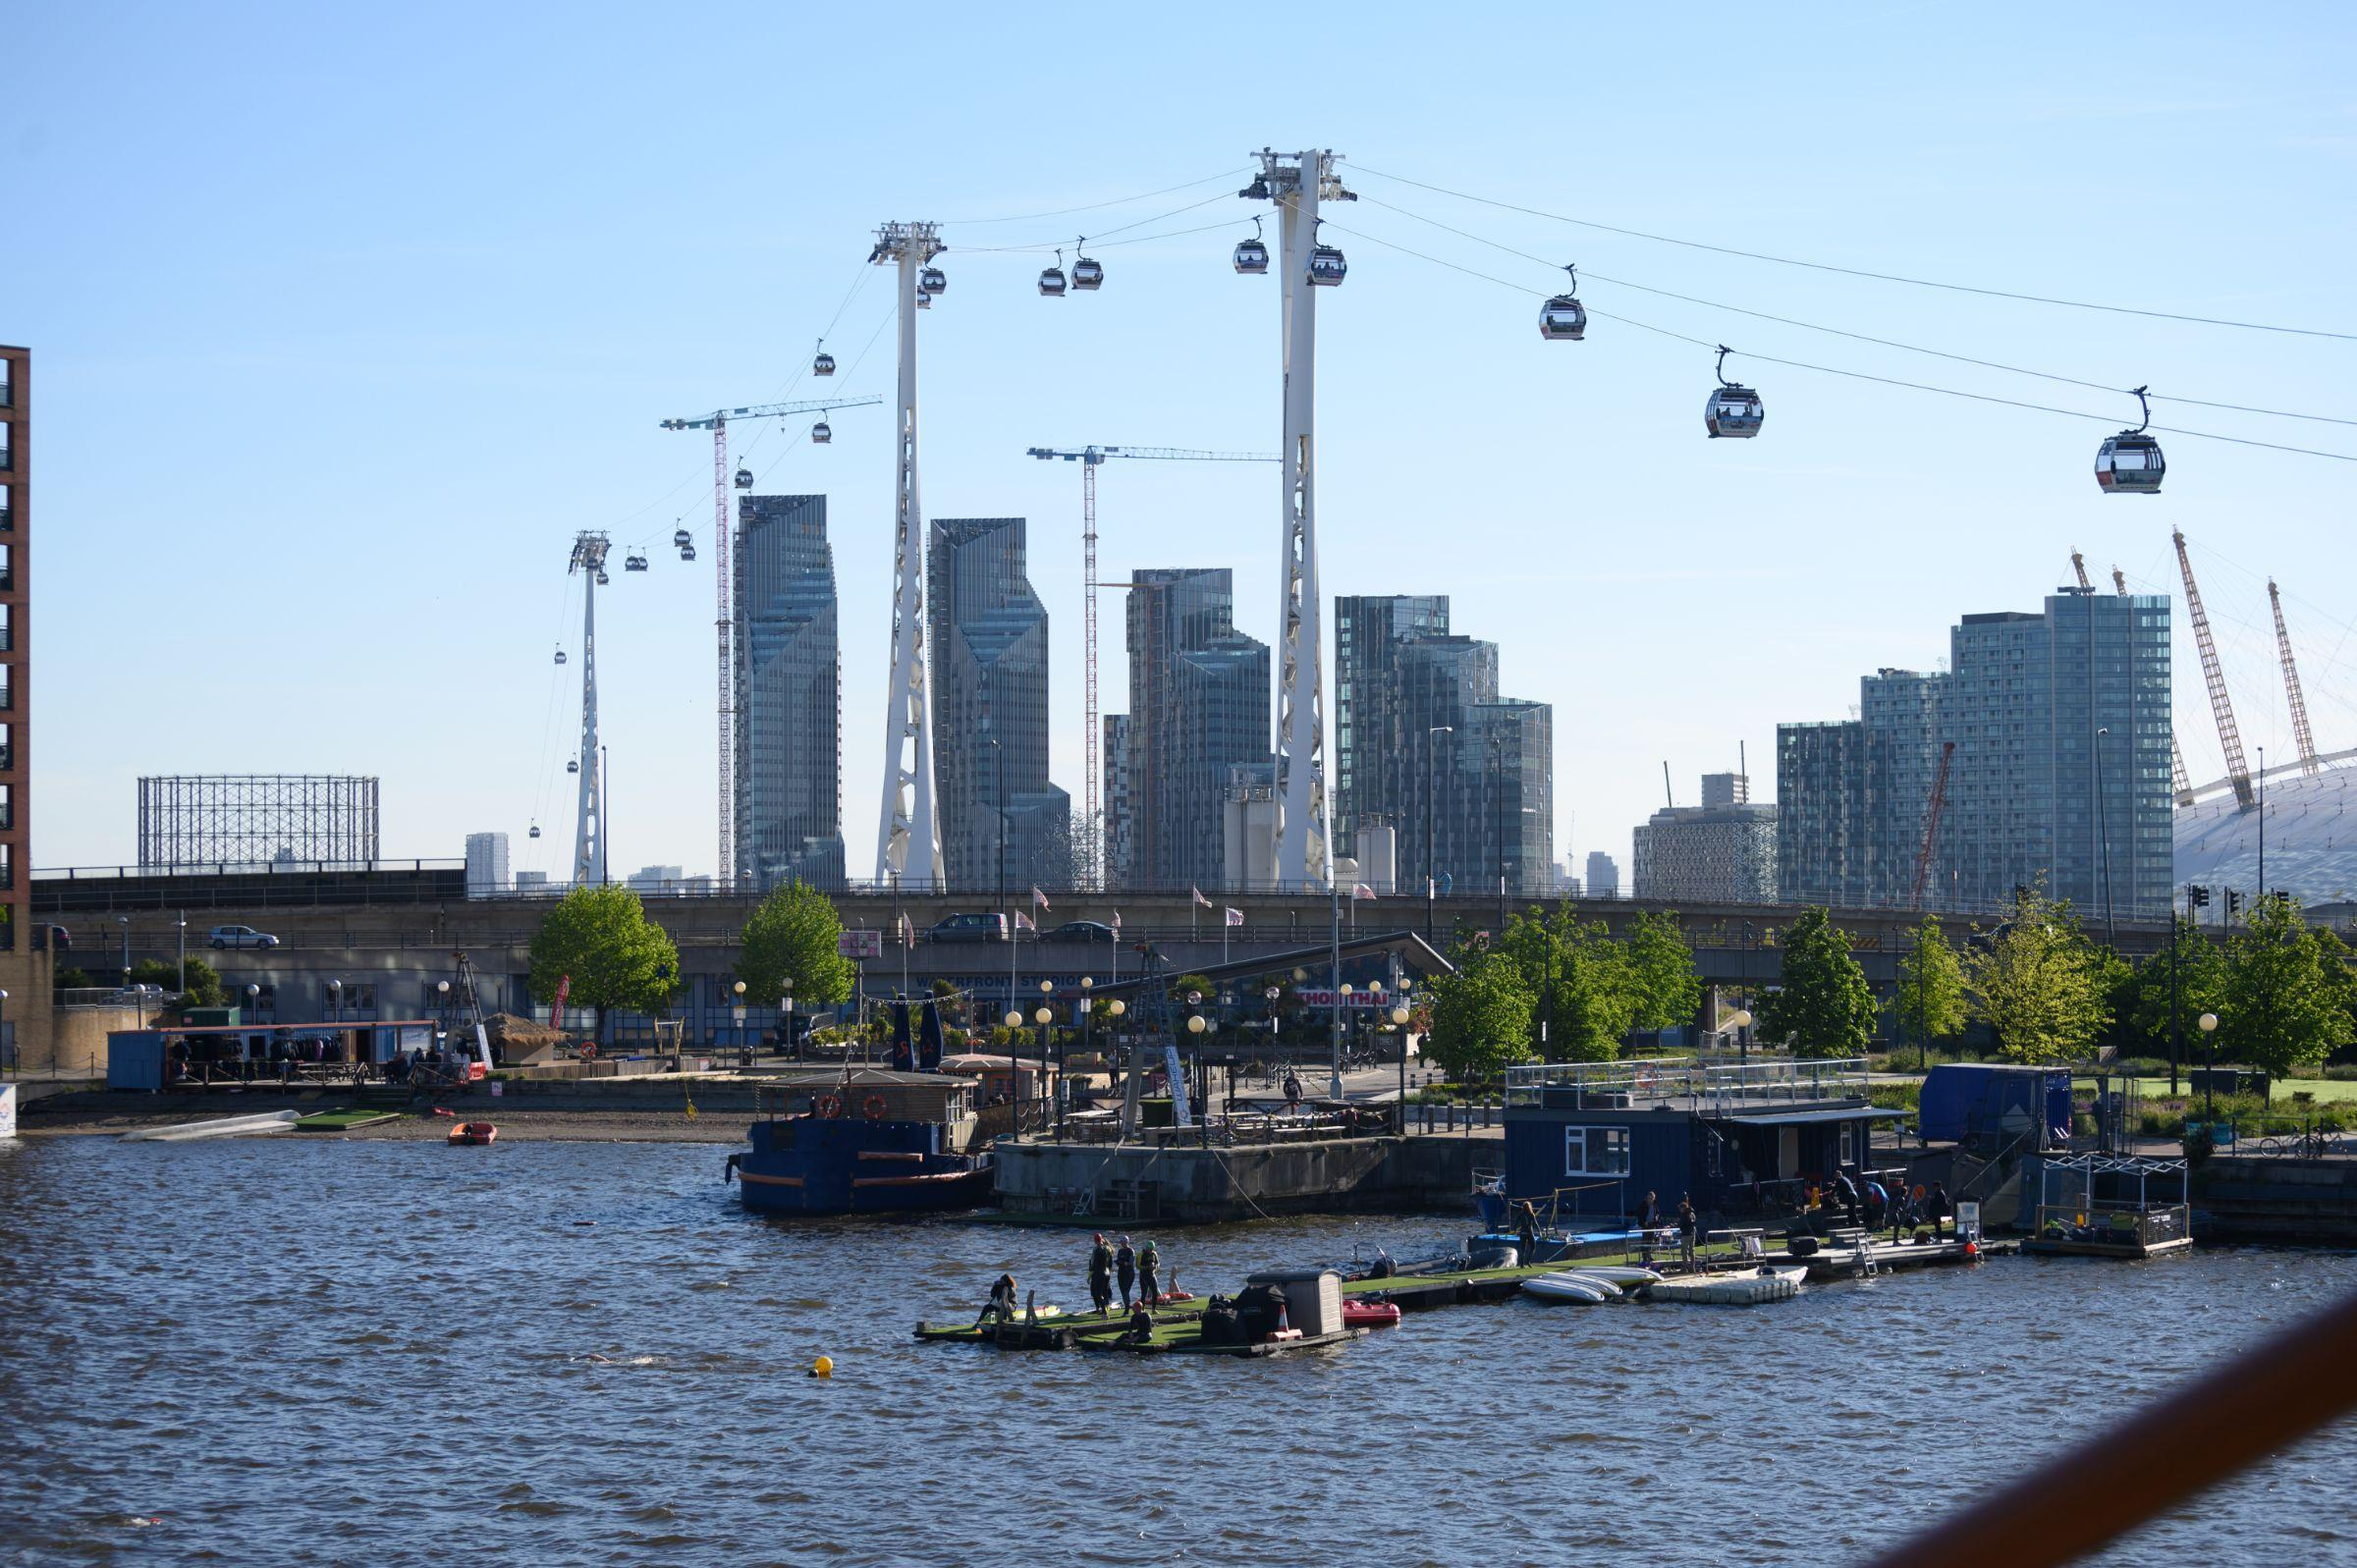 The water at the Royal Docks with the Emirates Cable Car in the background